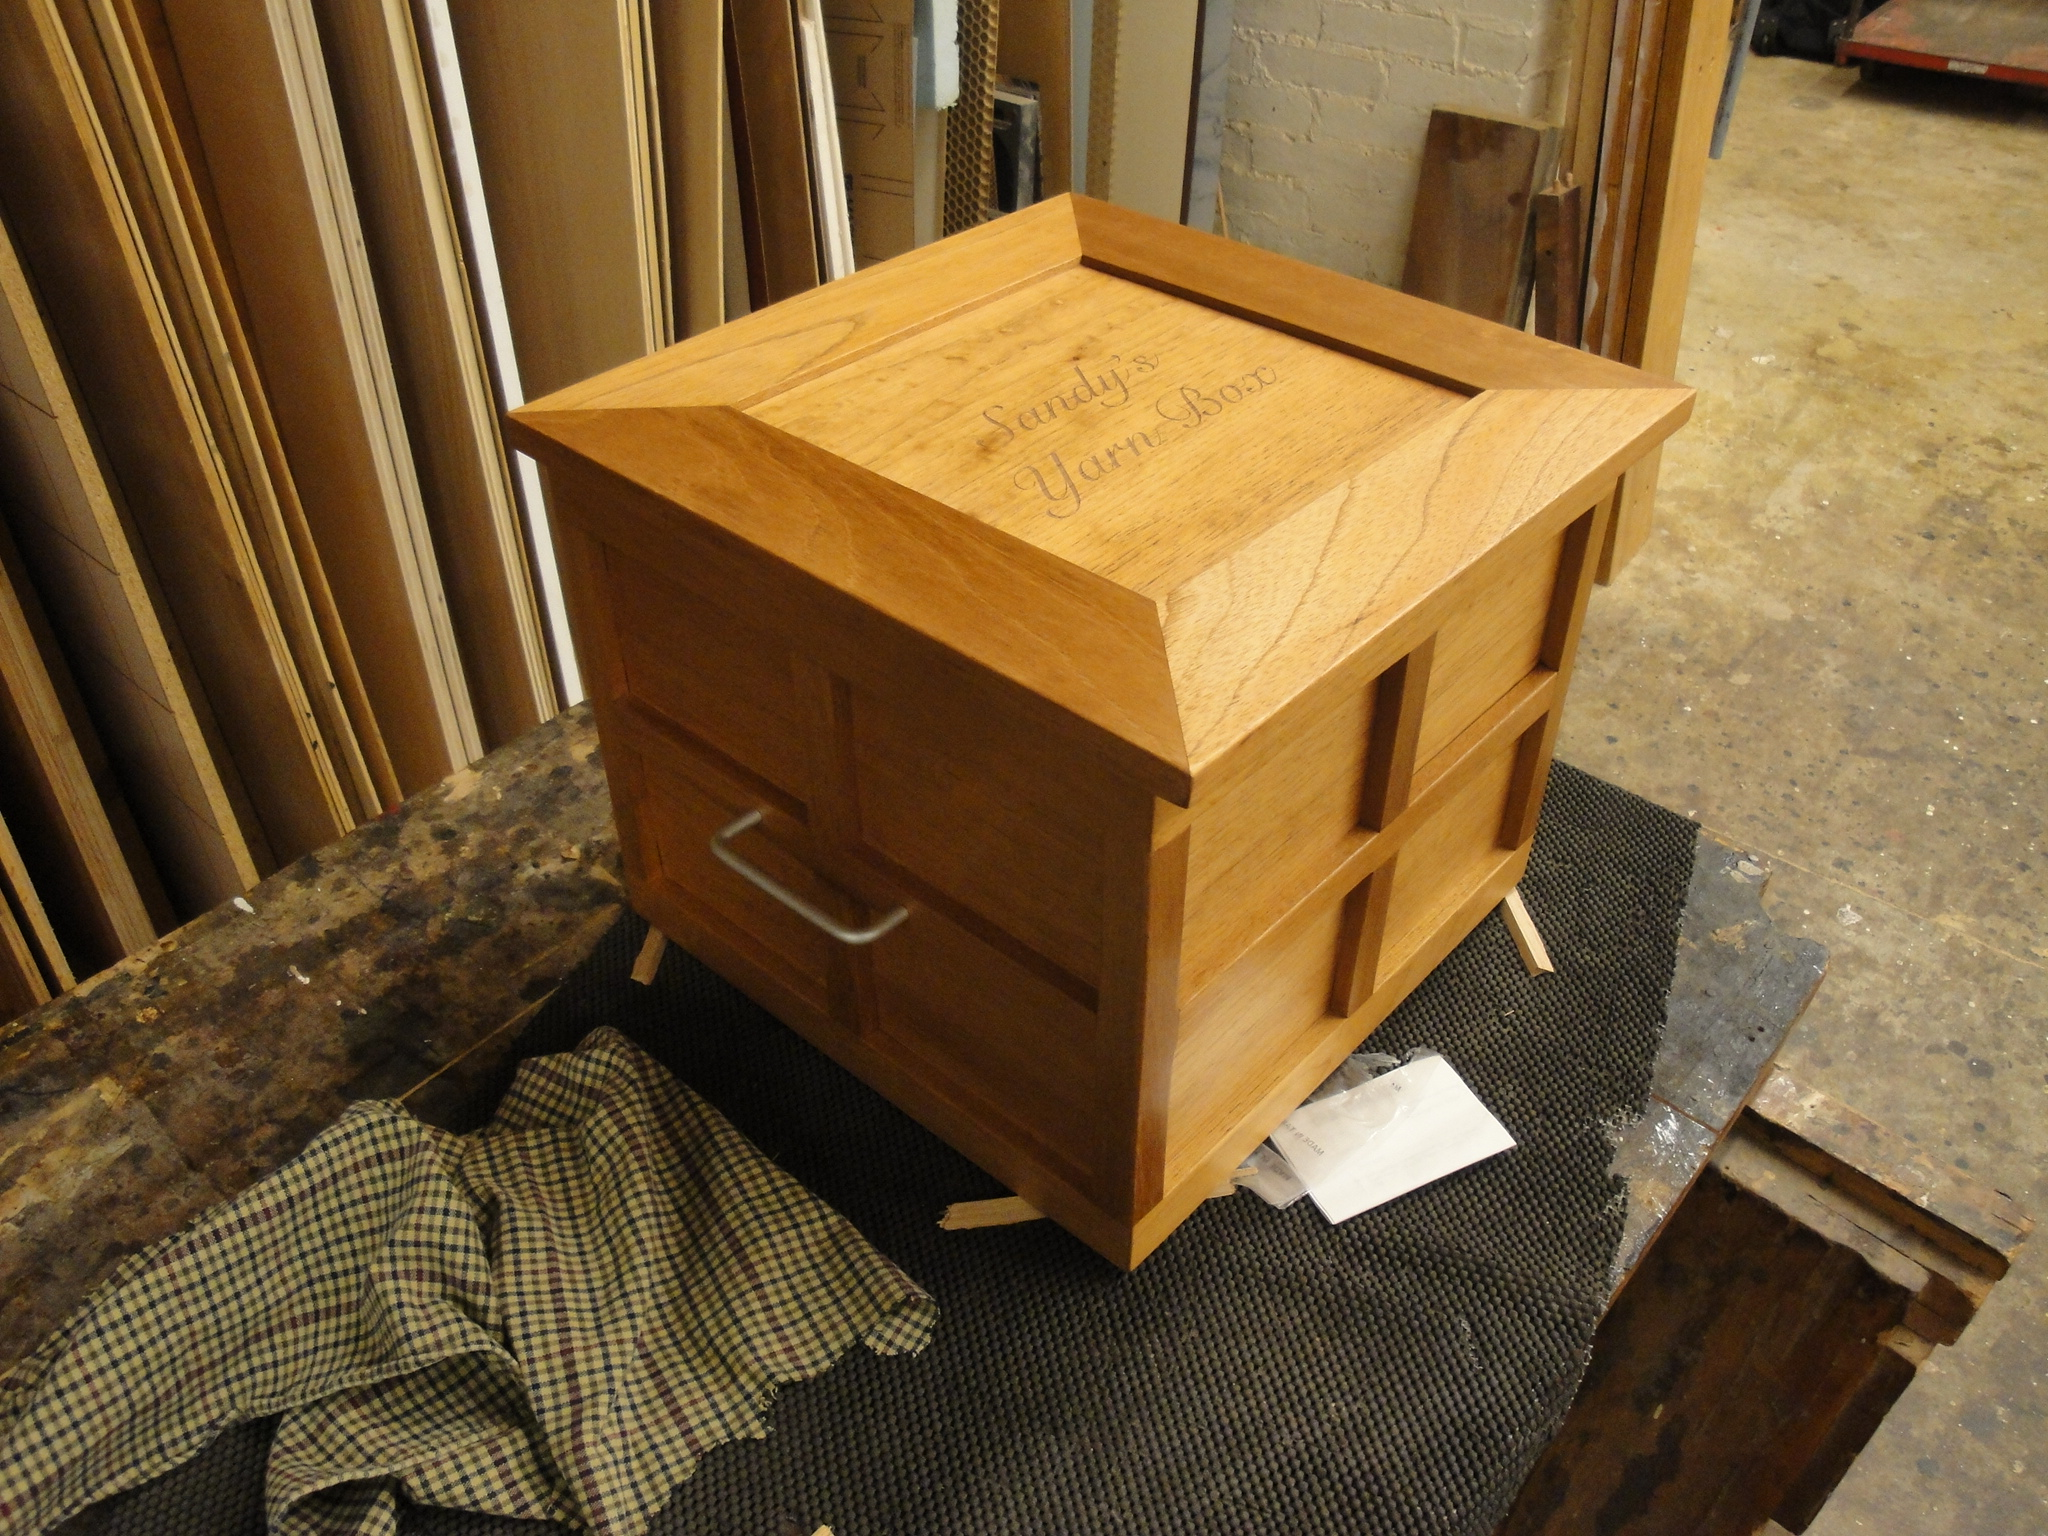 Woodworking Plans – Page 3 – Woodworking project ideas